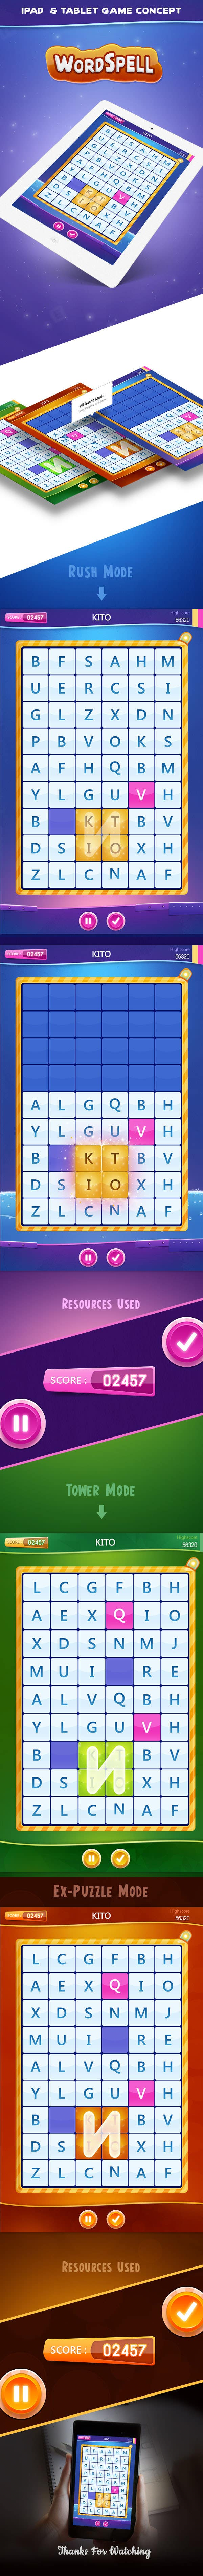 wordspell game app ui design